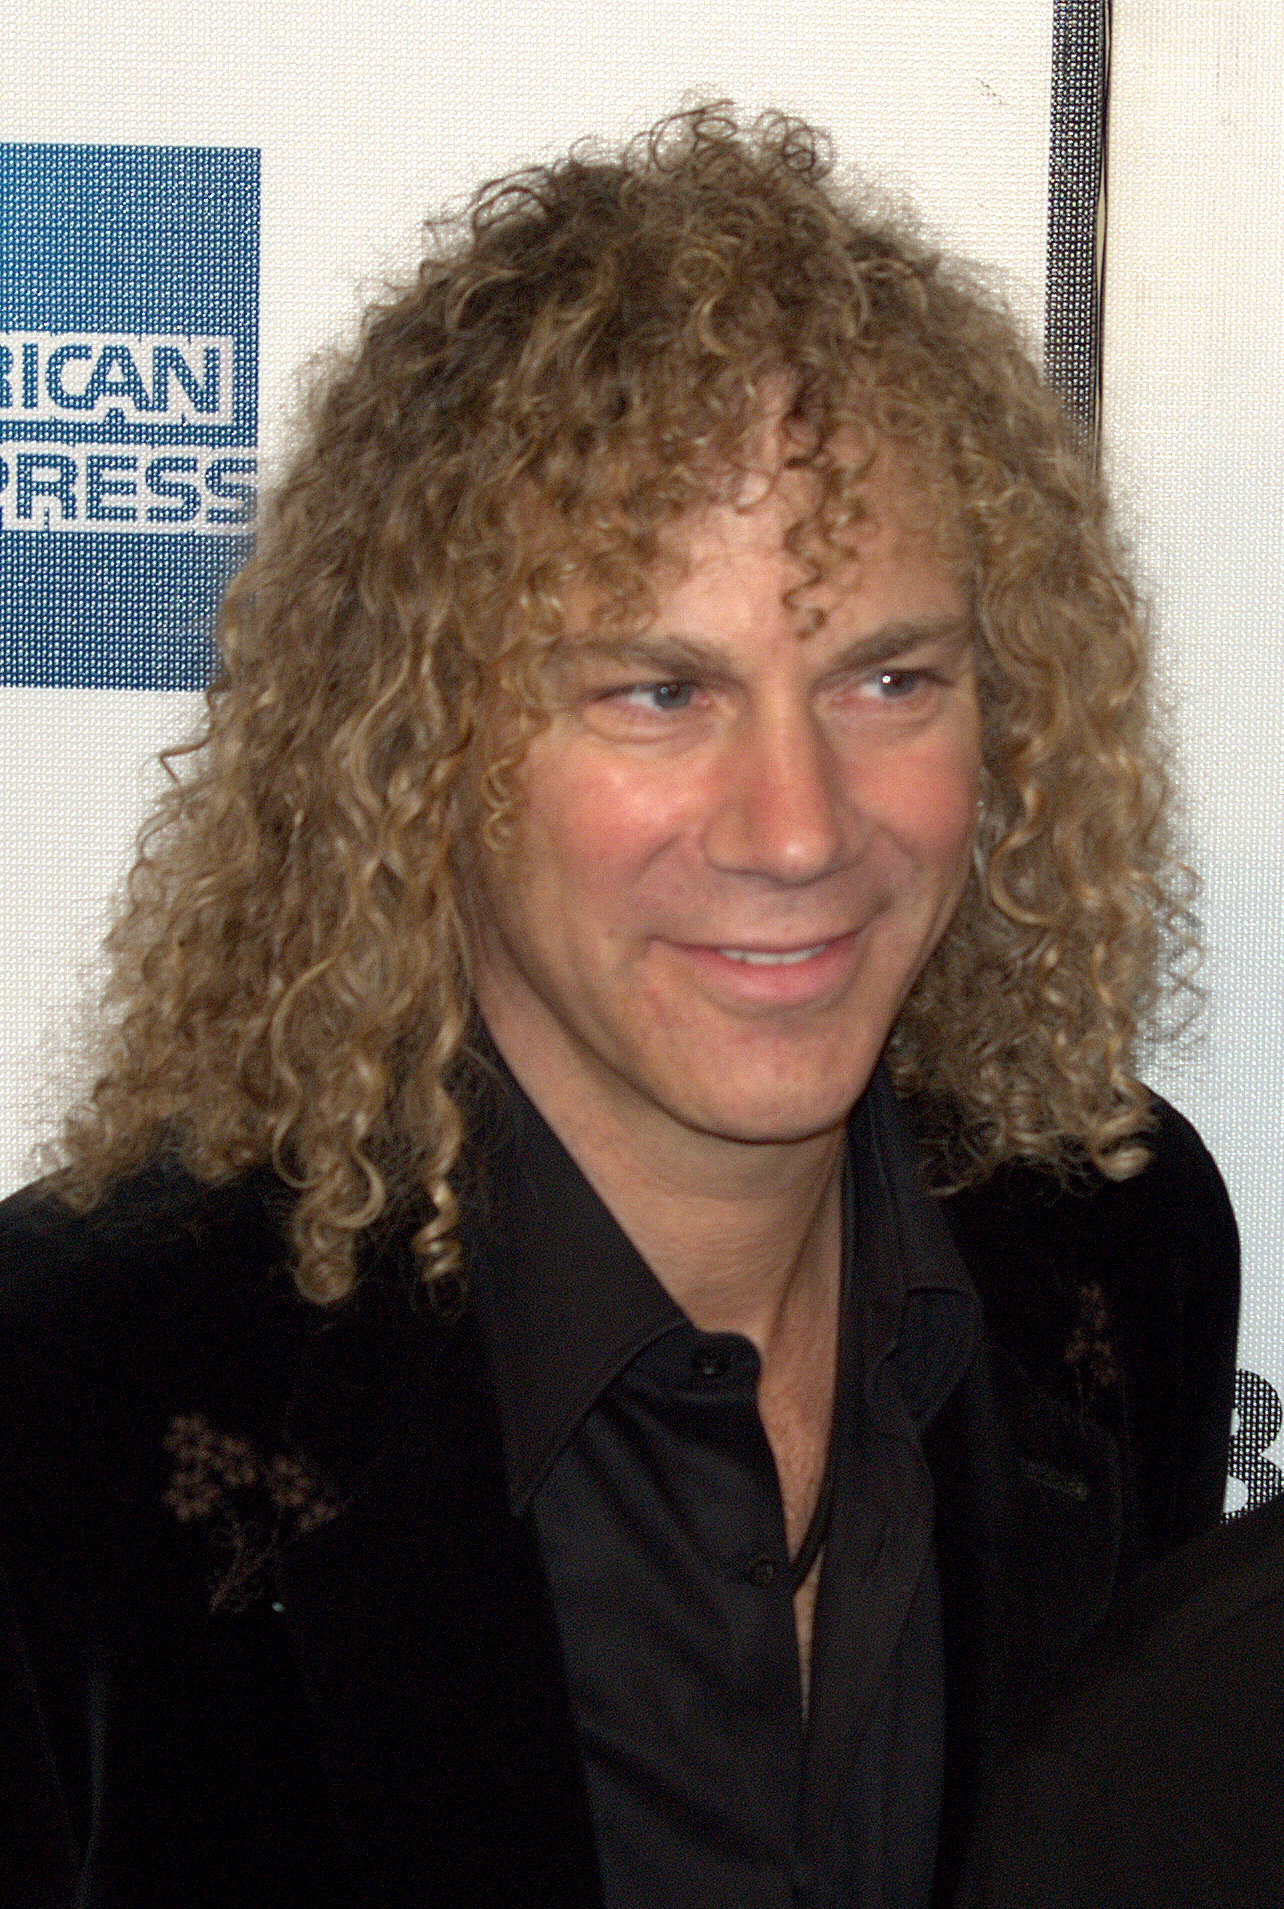 Bryan at the 2009 premiere of ''[[When We Were Beautiful]]''